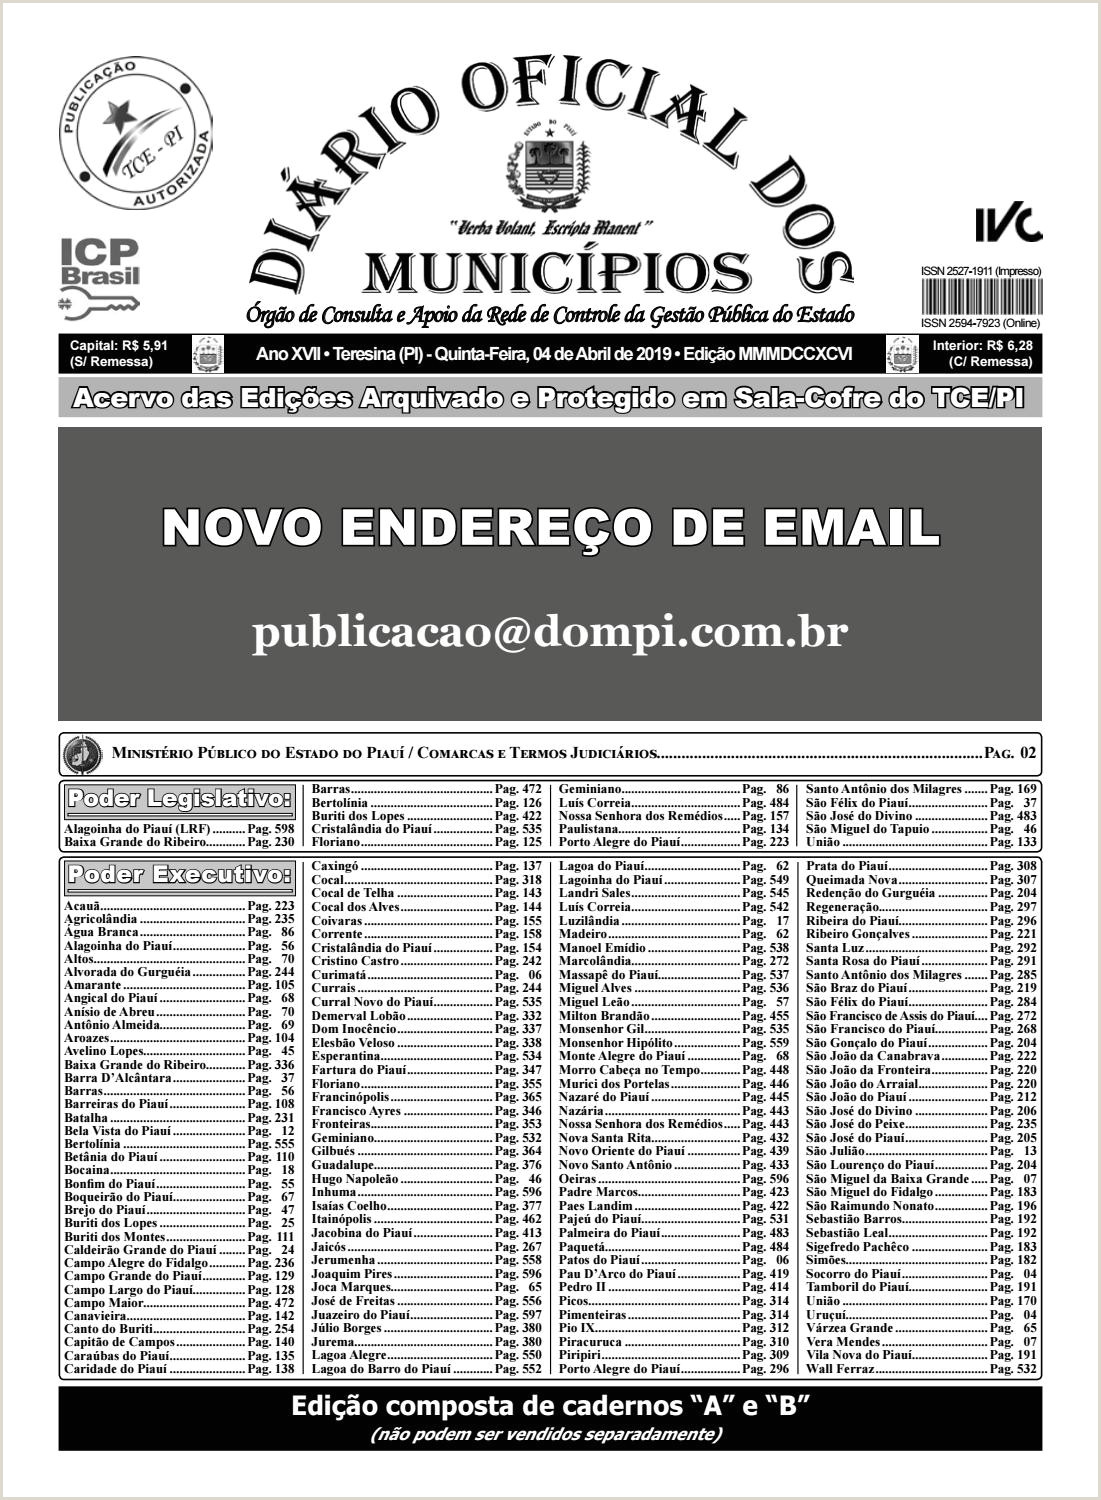 Curriculo Simples Limpeza Edi§£o 3796 by Diário Icial Dos Munic­pios issuu